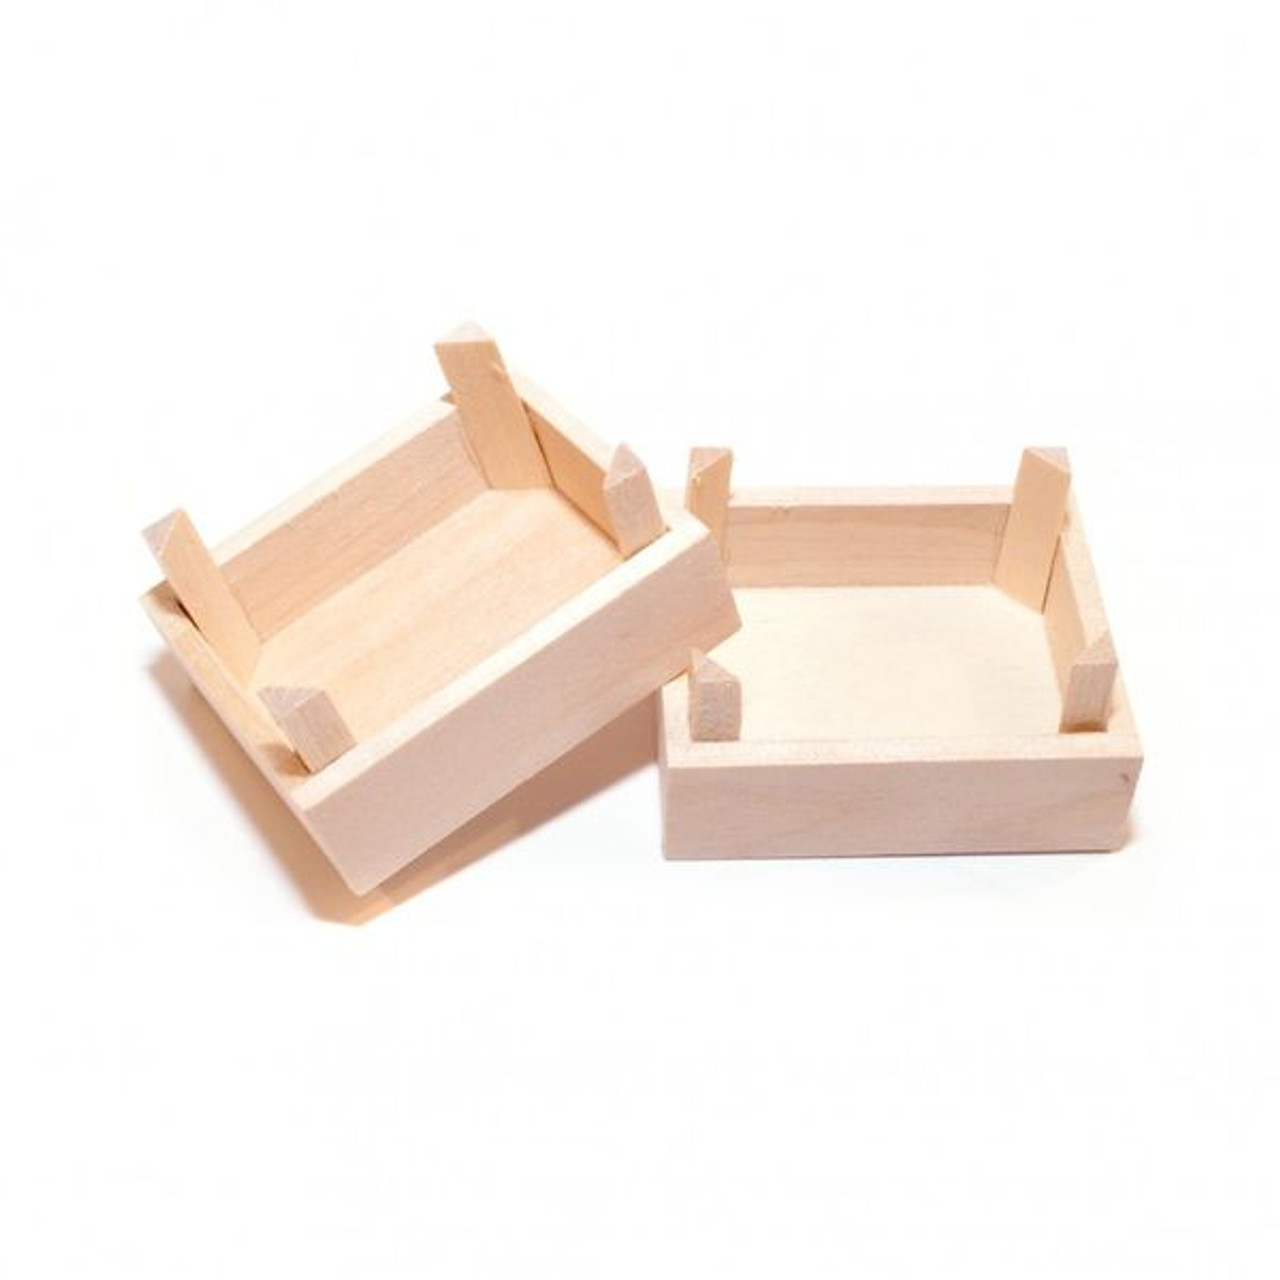 Pack of 2 crates D1641